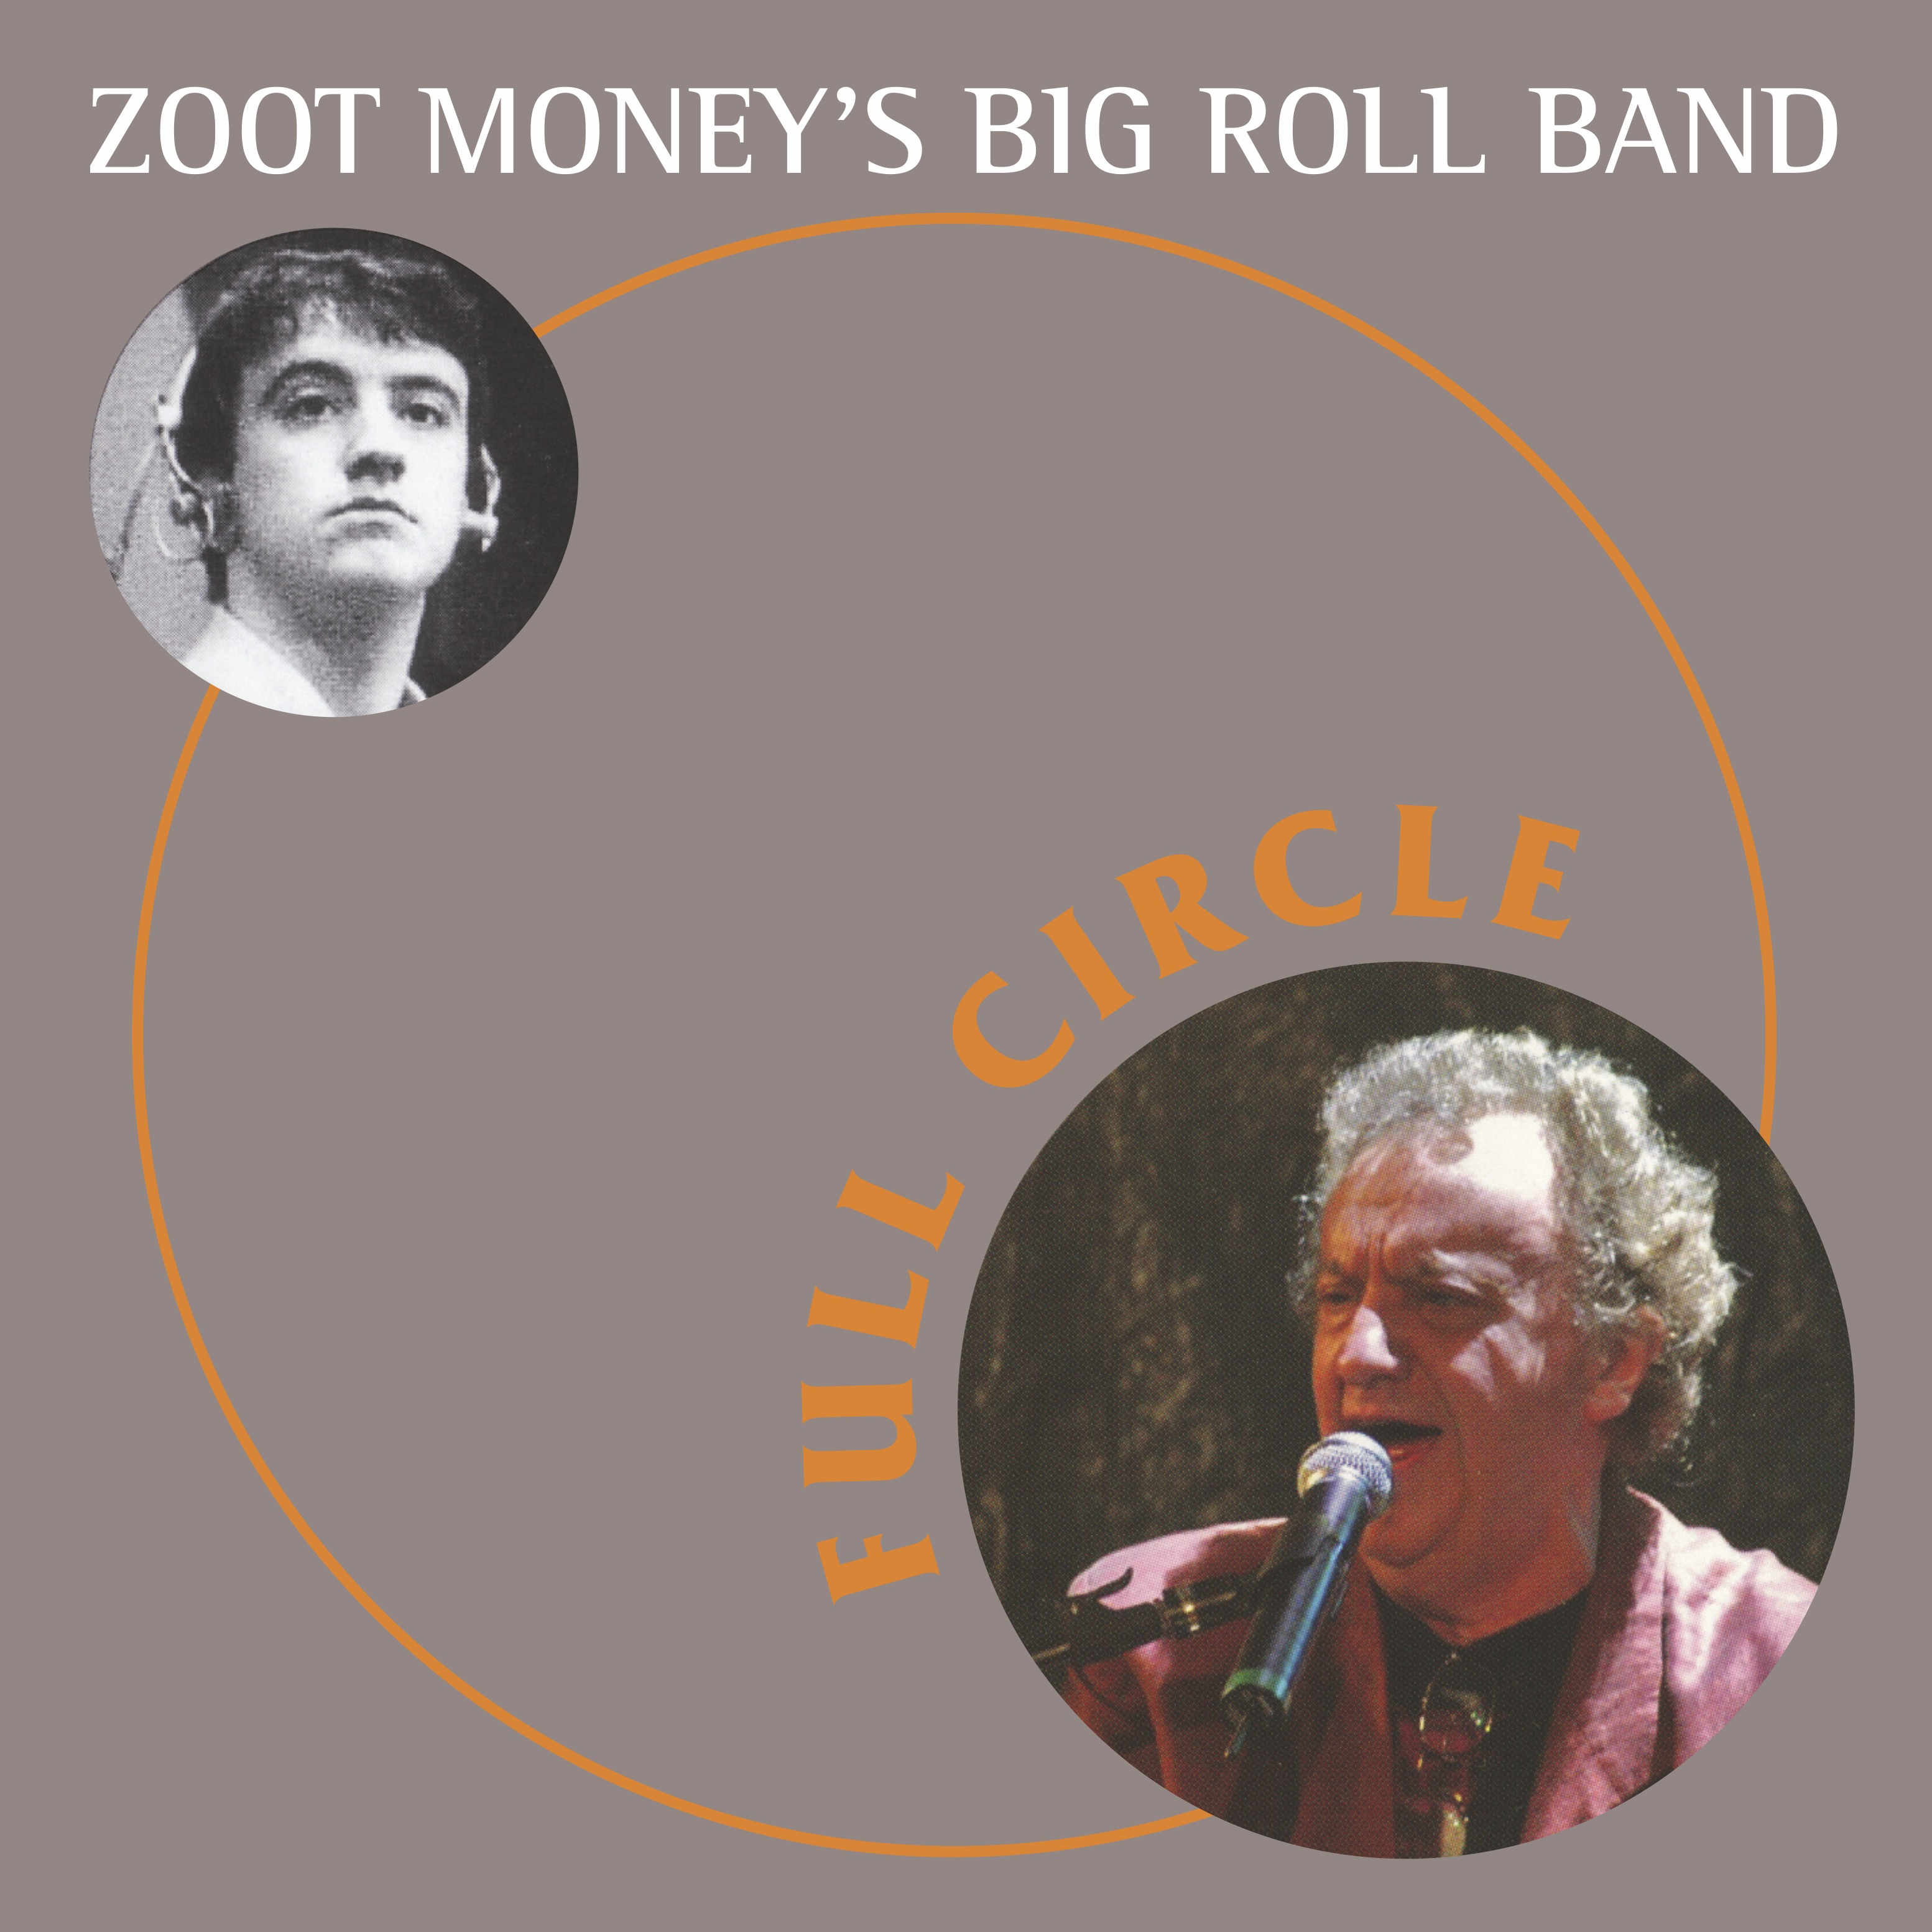 Zoot Money's Big Roll Band – Full Circle